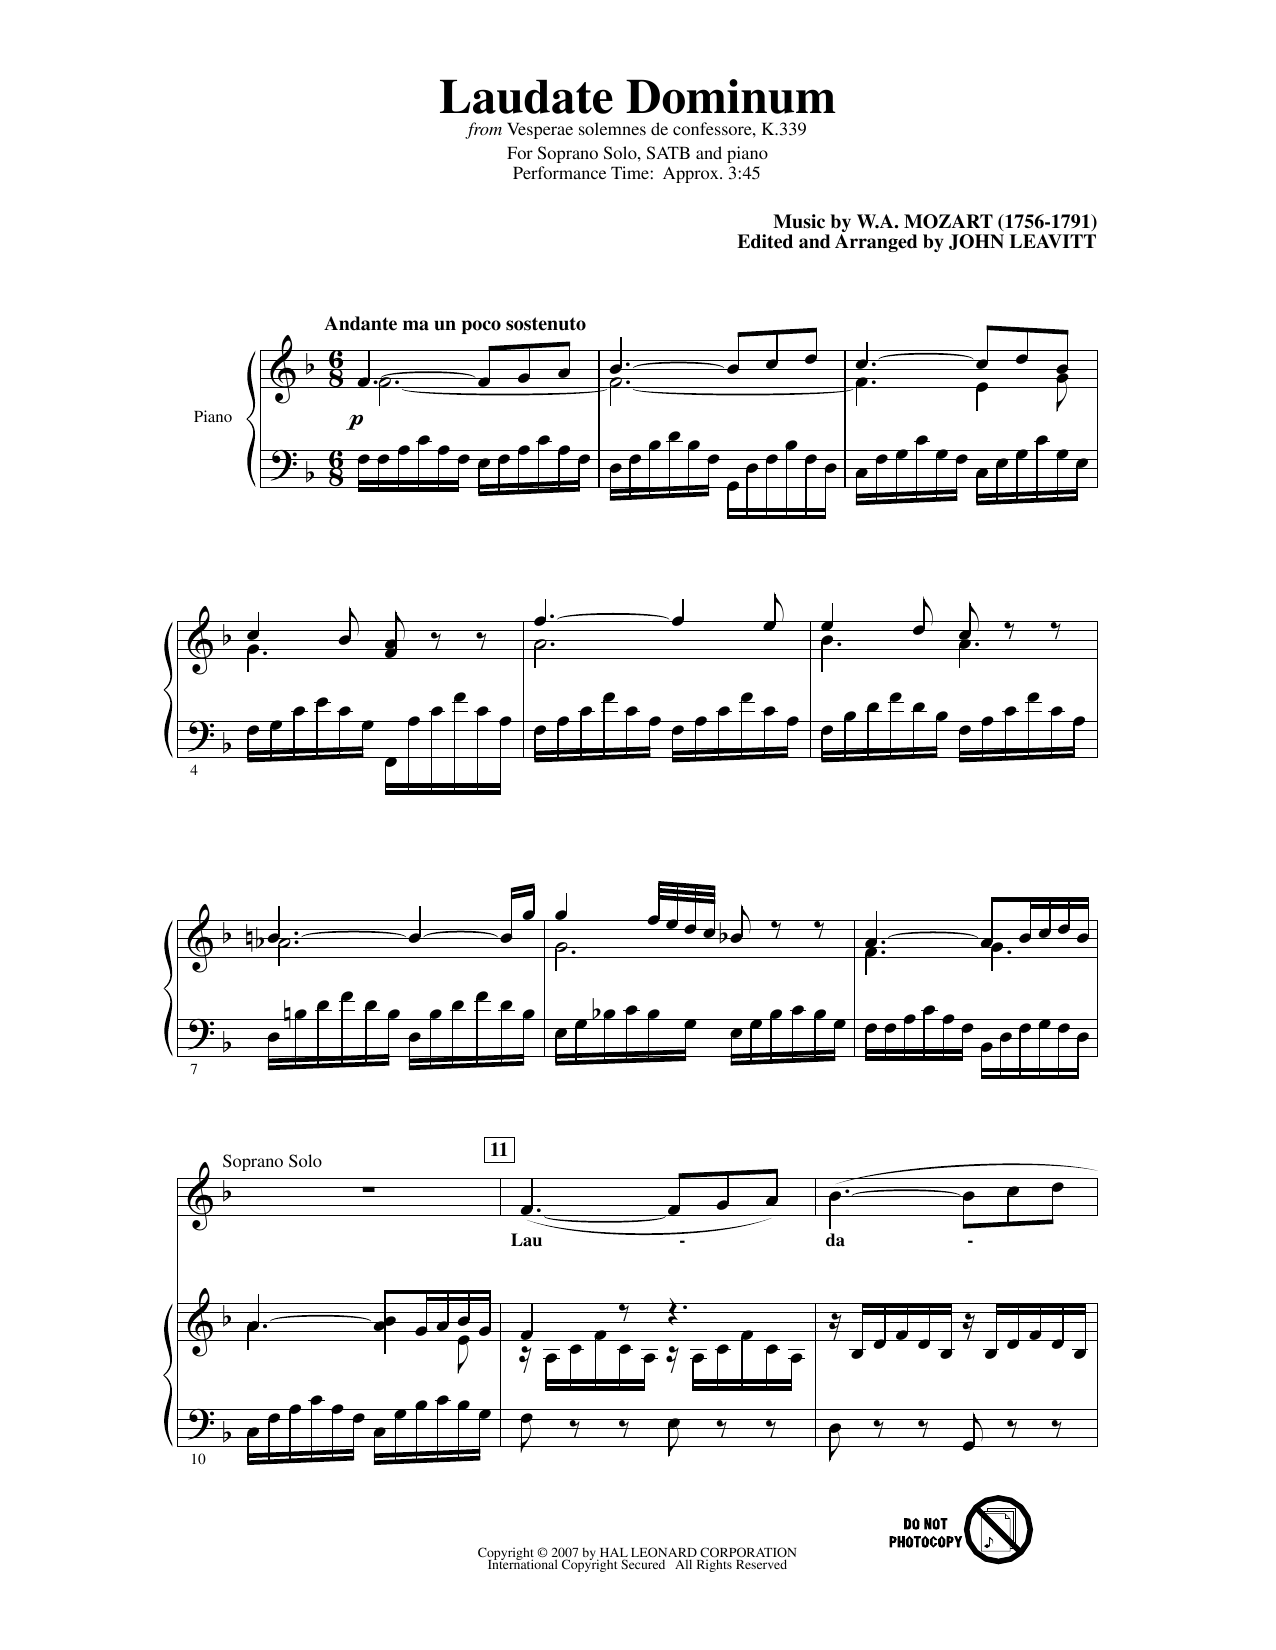 Wolfgang Amadeus Mozart Laudate Dominum (from Vesperae solennes de confessore, K. 339) (arr. John Leavitt) sheet music notes and chords. Download Printable PDF.